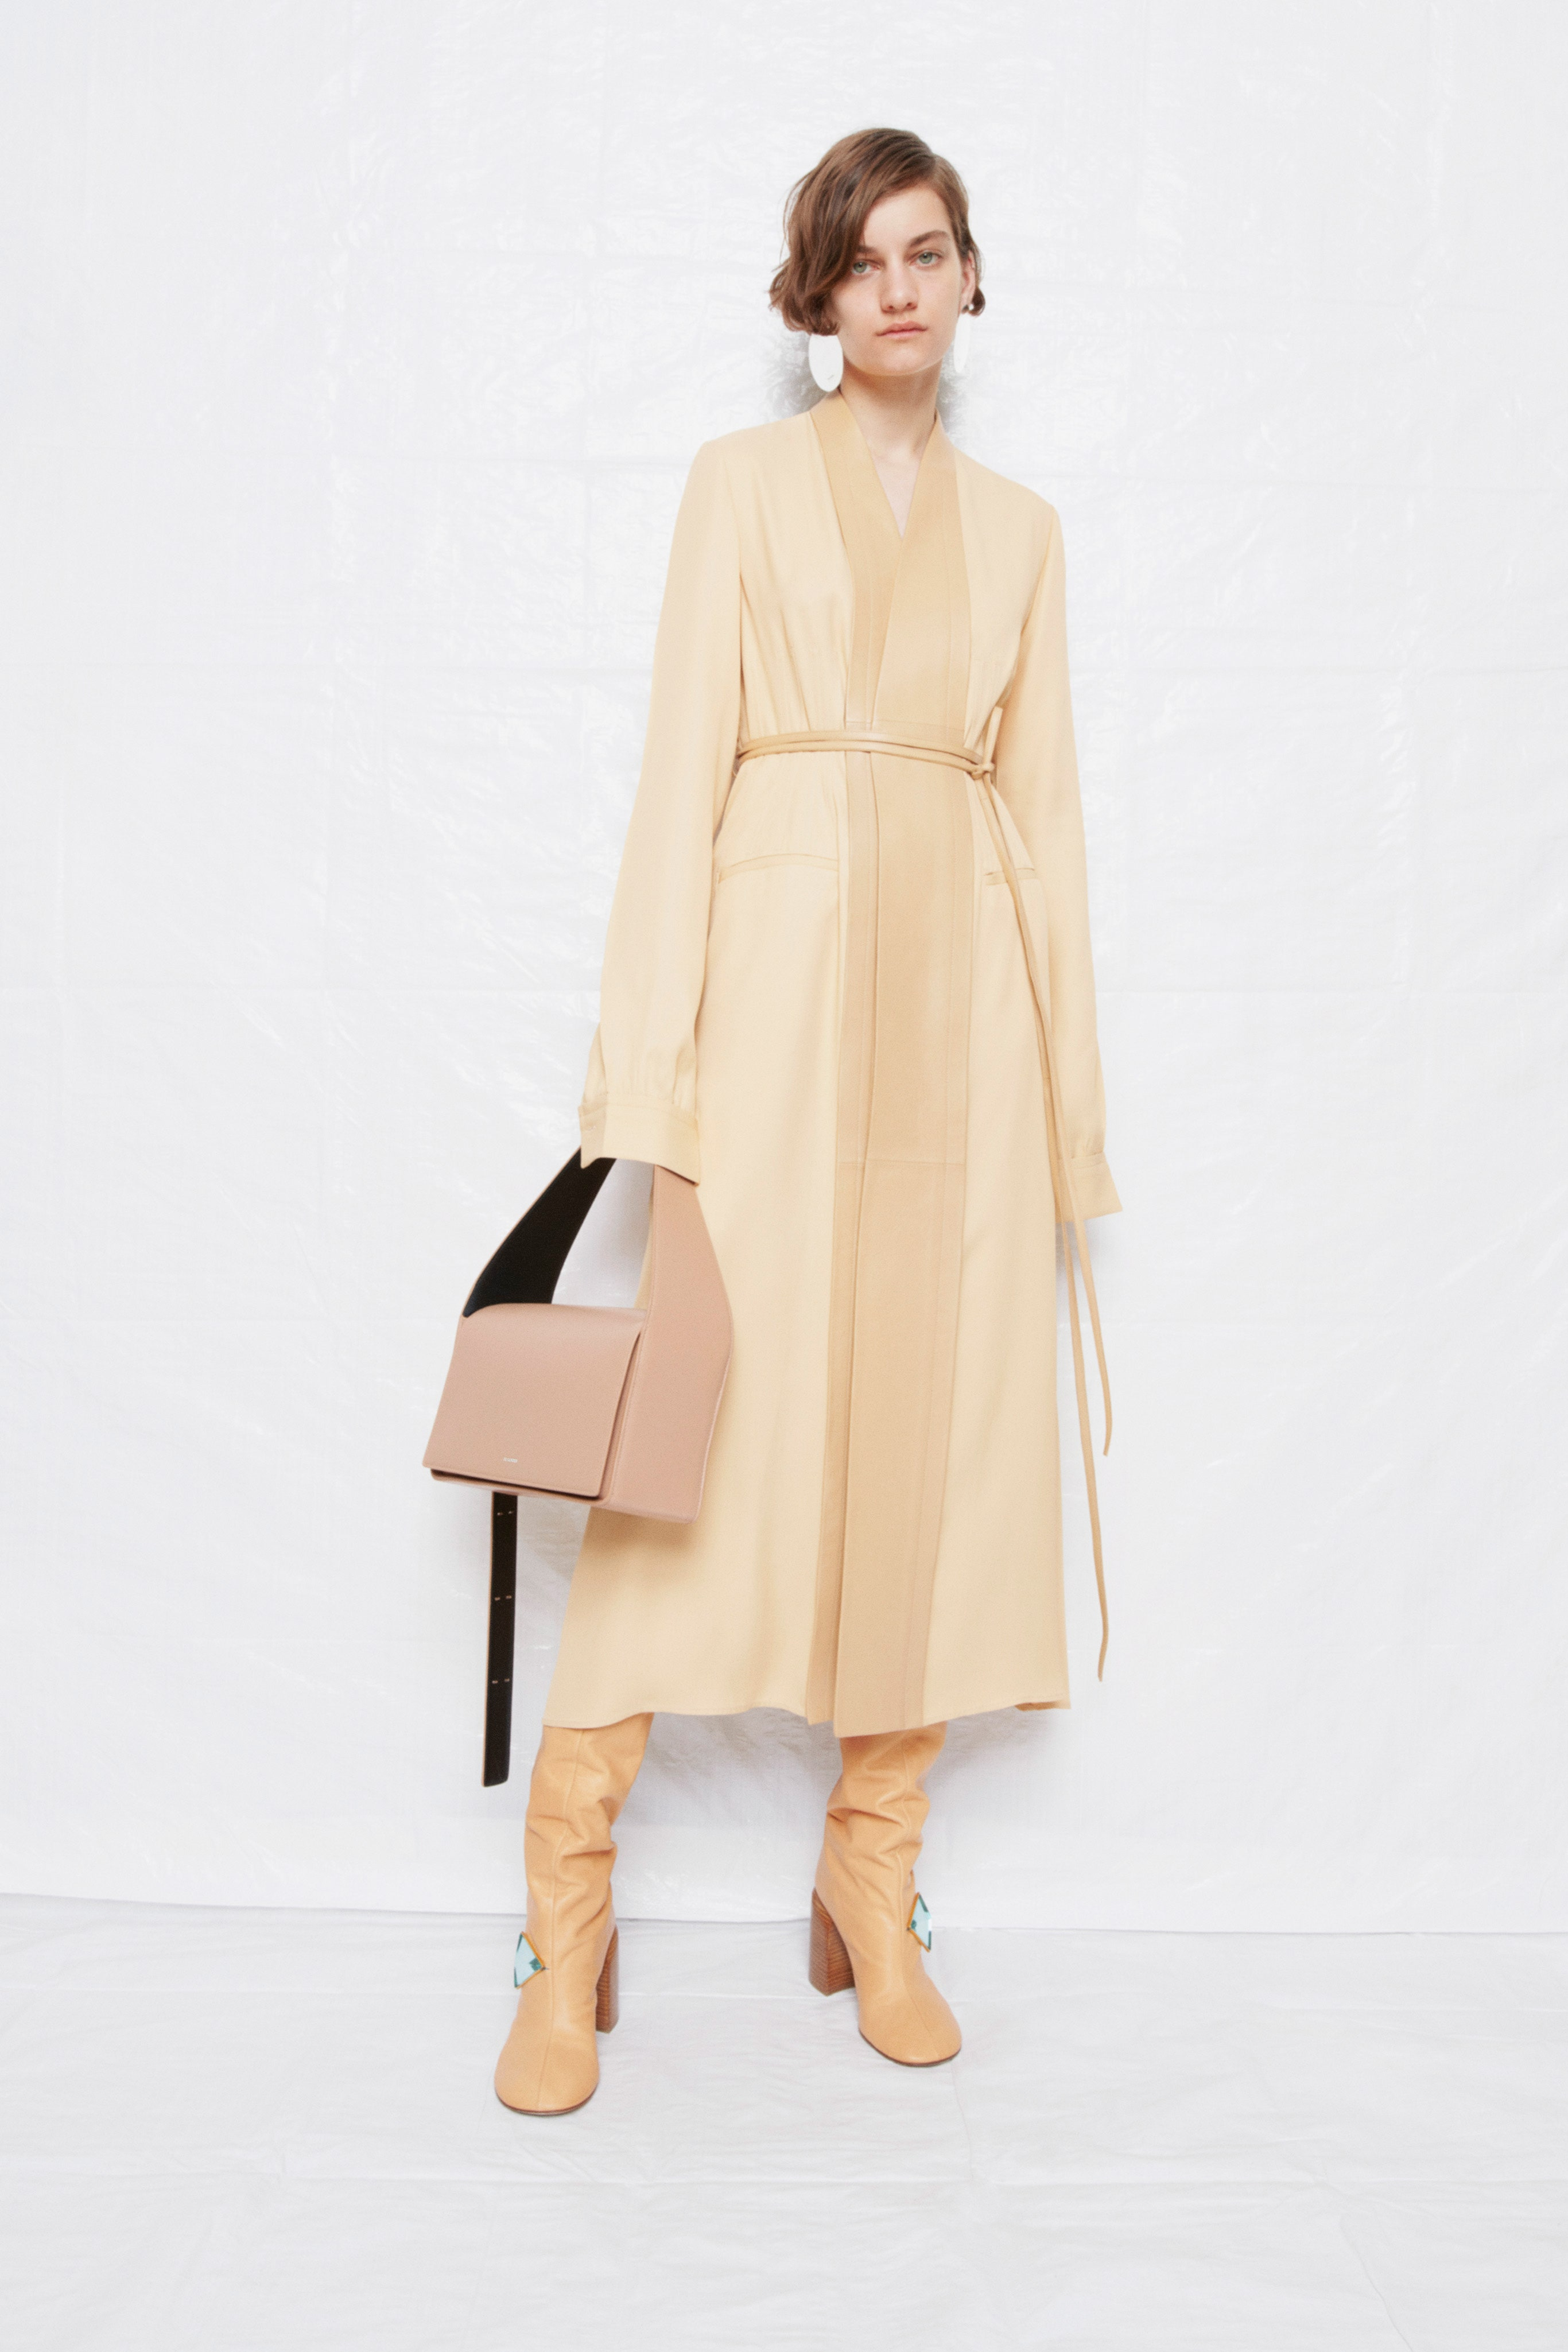 For walks in the fresh air: A seasonal collection of Jil Sander arrived at Asthik (photo 6)